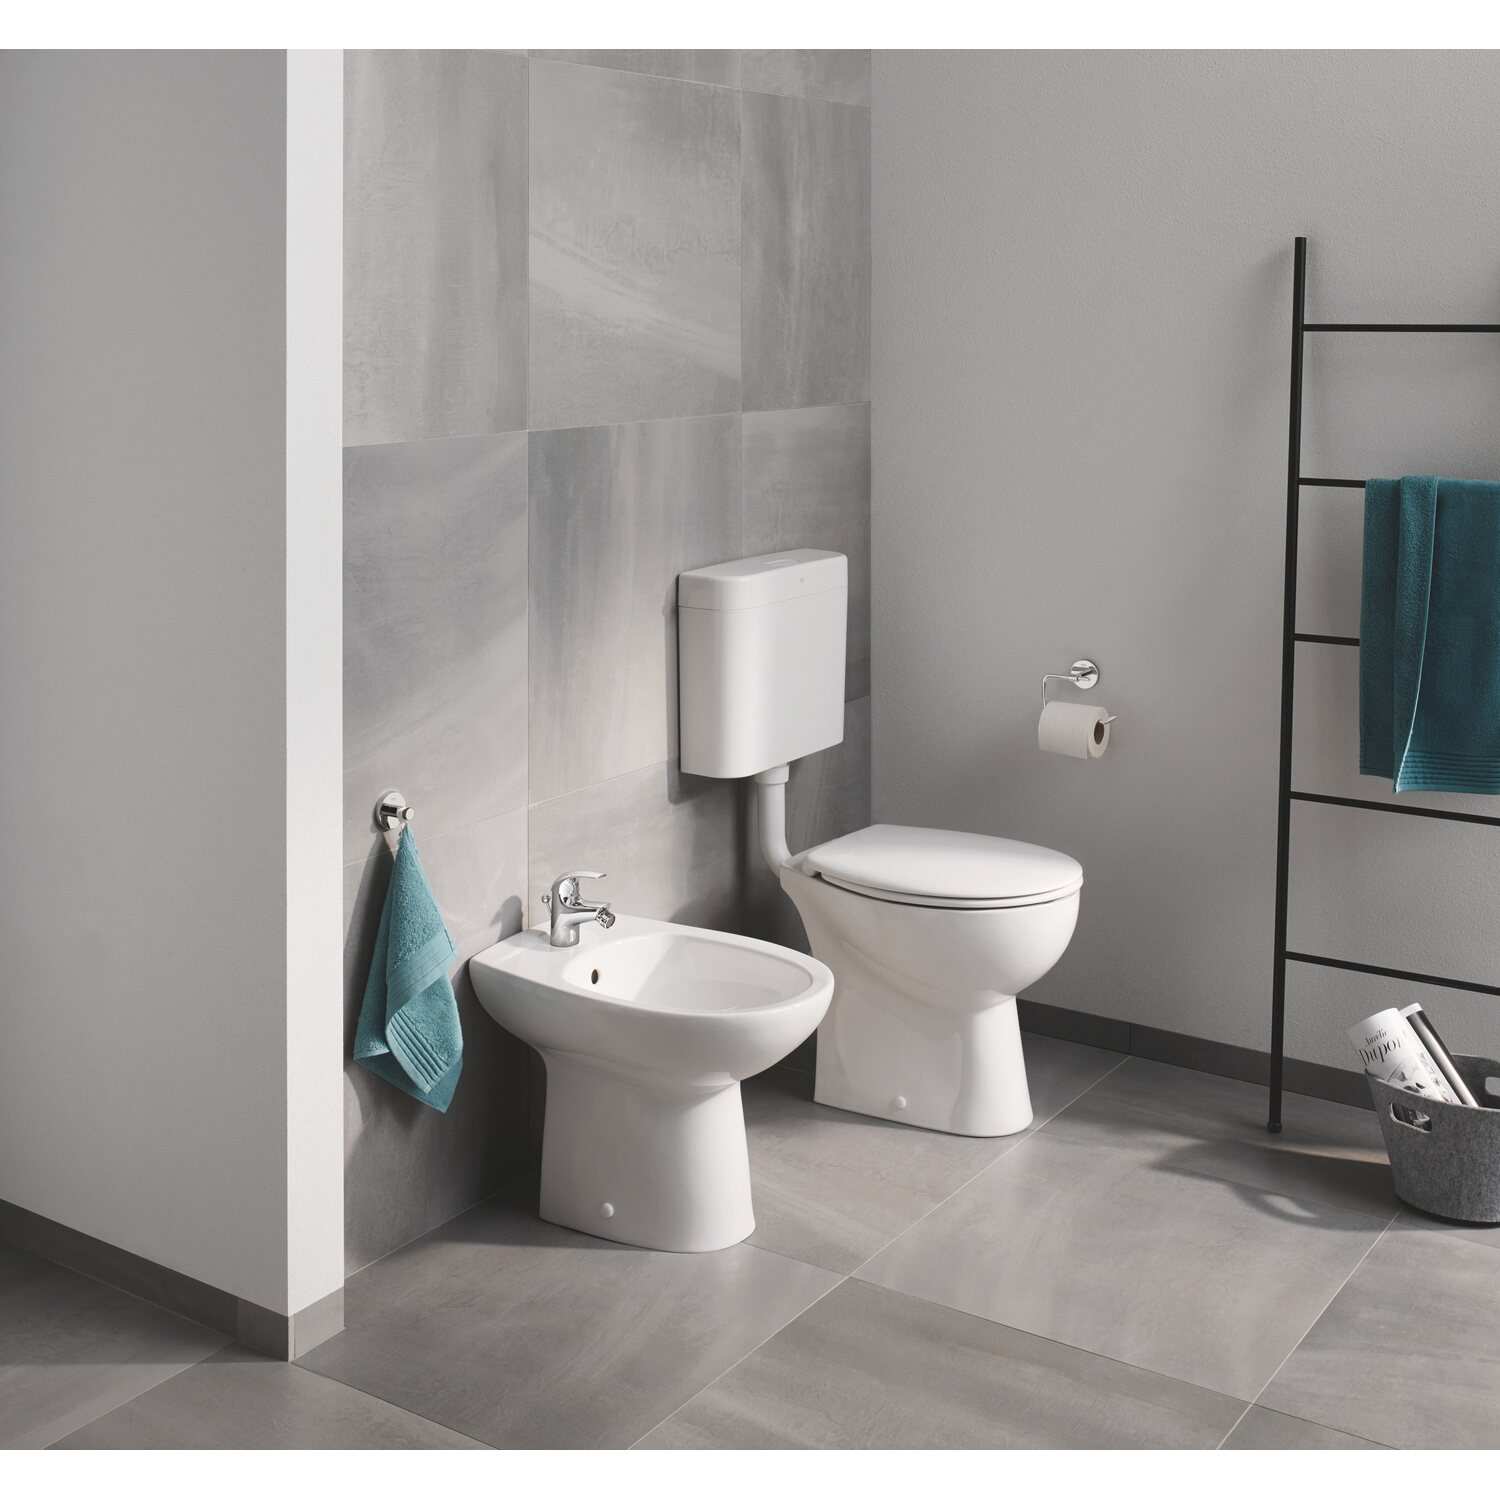 grohe stand wc bau keramik tiefsp ler sp lrandlos alpinwei kaufen bei obi. Black Bedroom Furniture Sets. Home Design Ideas